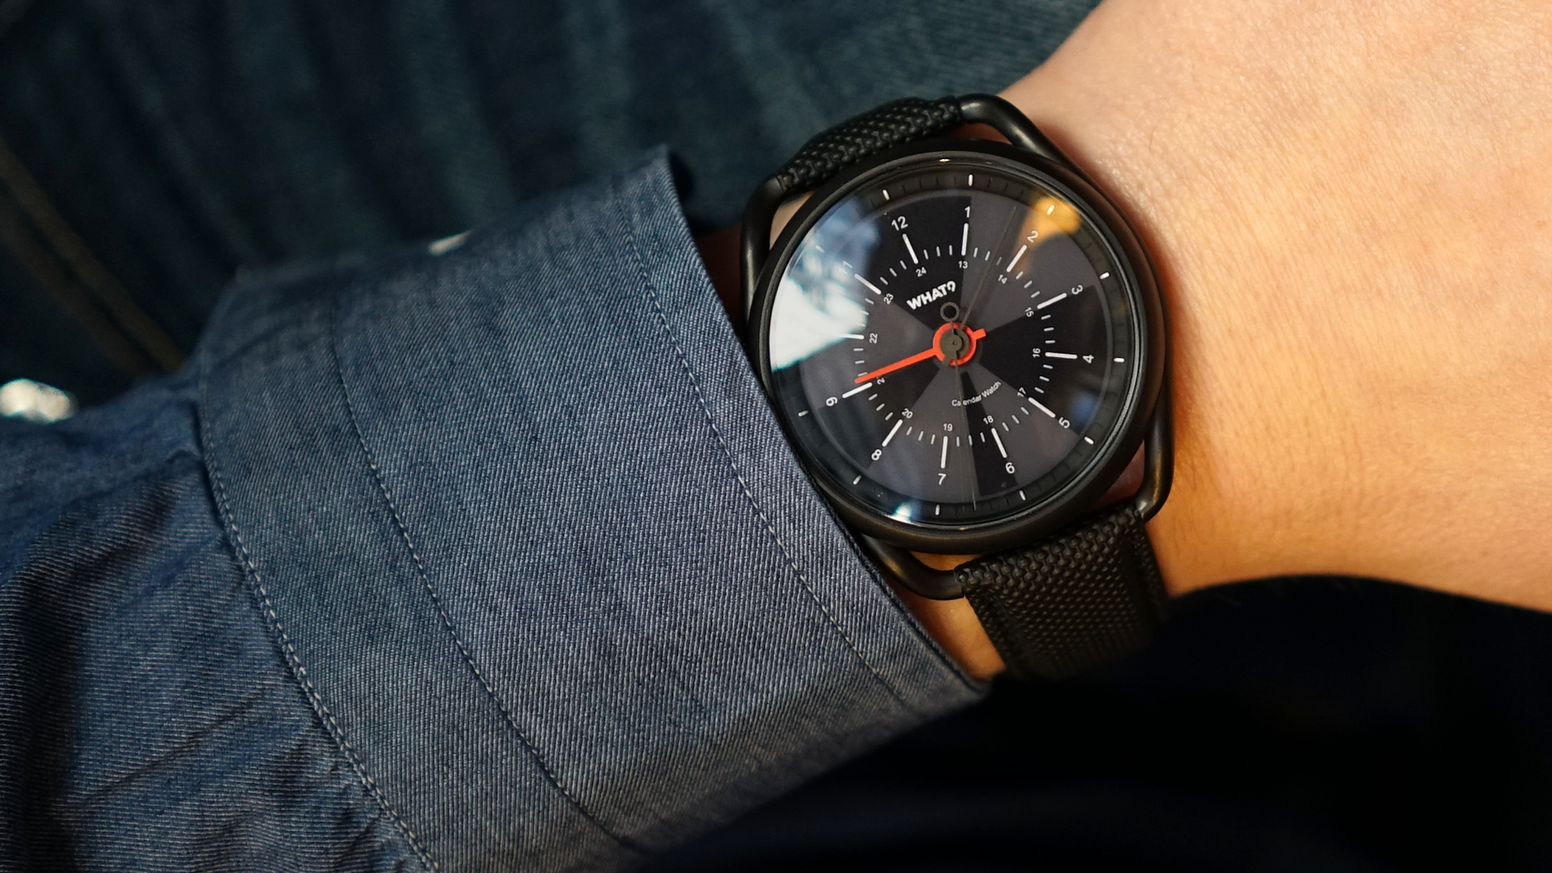 Calendar Watch combines iconic watch design with your favorite digital calendar